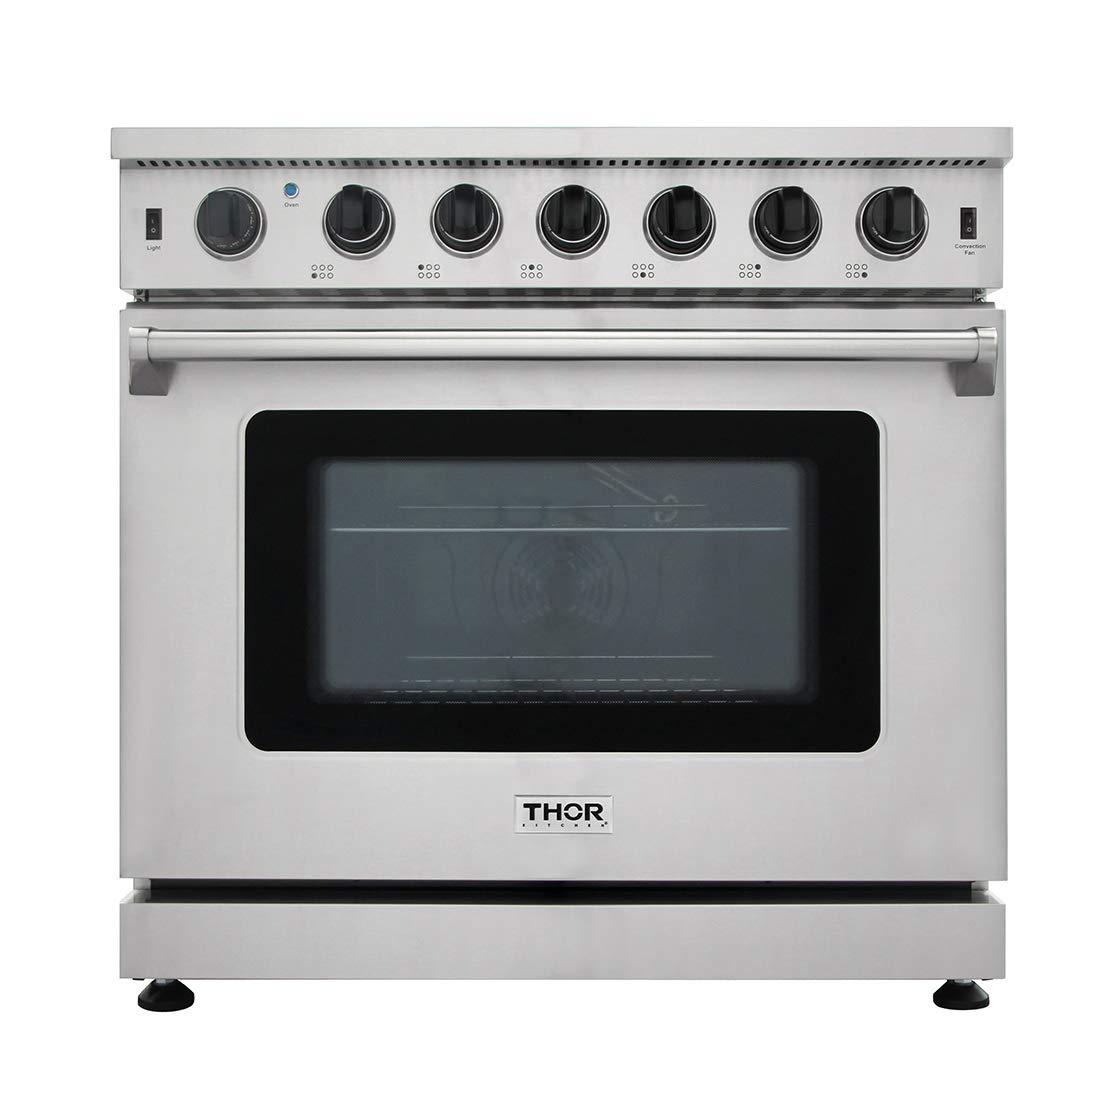 New Arrival 36 Inch Gas Range 6 Burners Cooktop 6.0 cu.ft Oven Thor Kitchen LRG3601U by Thor Kitchen Products